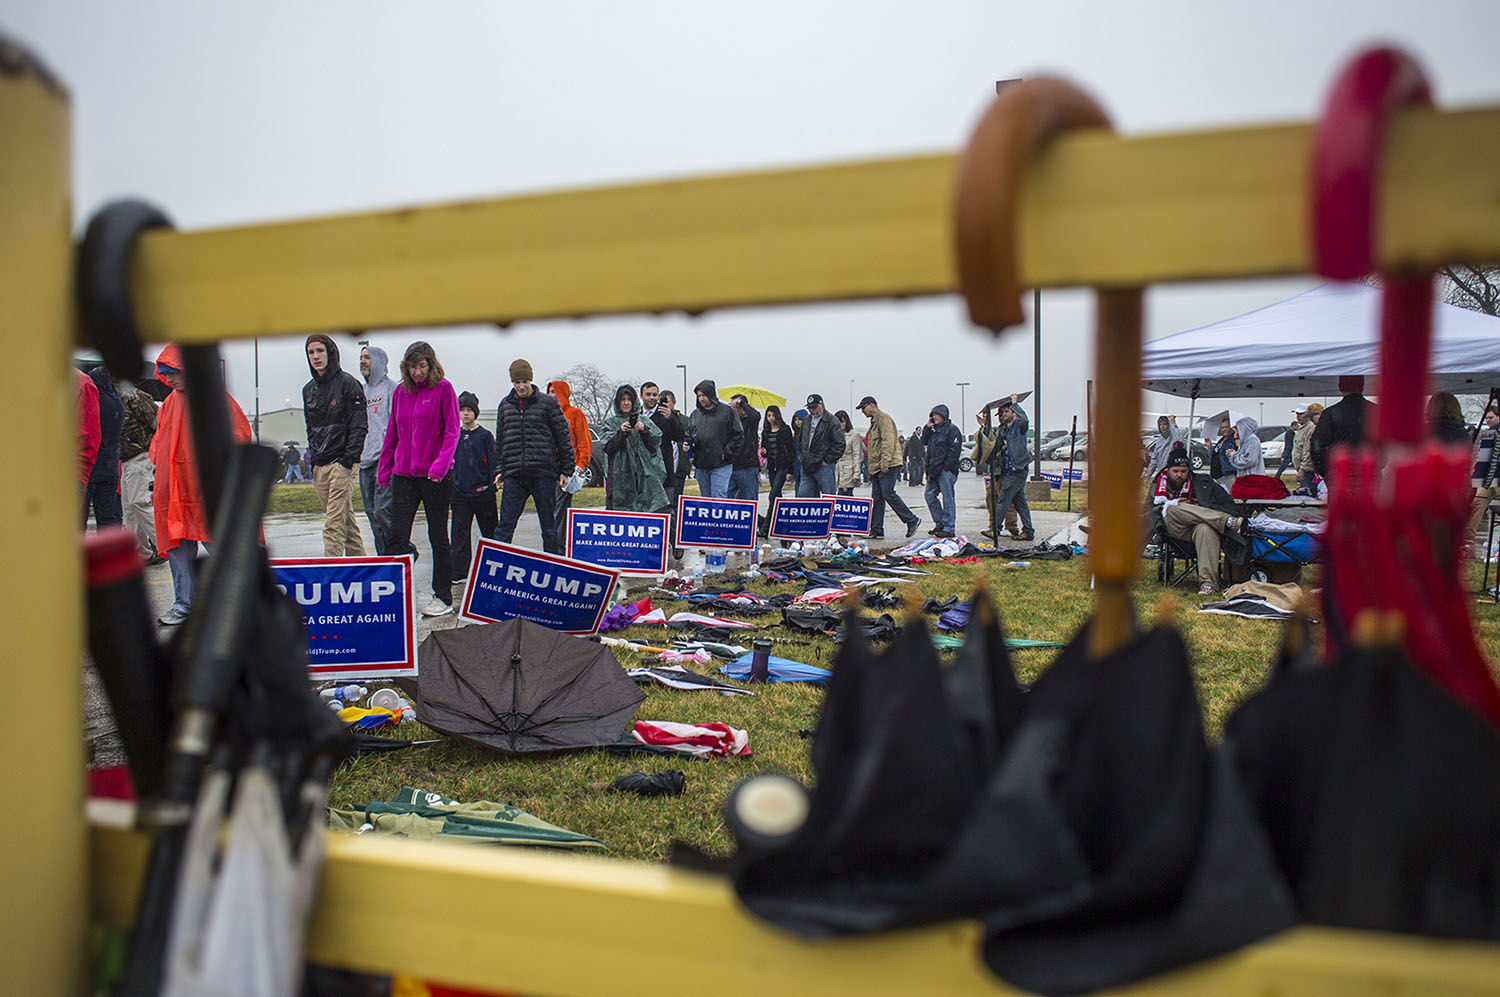 Donald Trump rally attendees wait in line next to a collection of discarded drinks, umbrellas, signs, and other items not to be allowed into the rally at the Synergy Flight Center in Bloomington, Illinois, Sunday, March, 12, 2016.